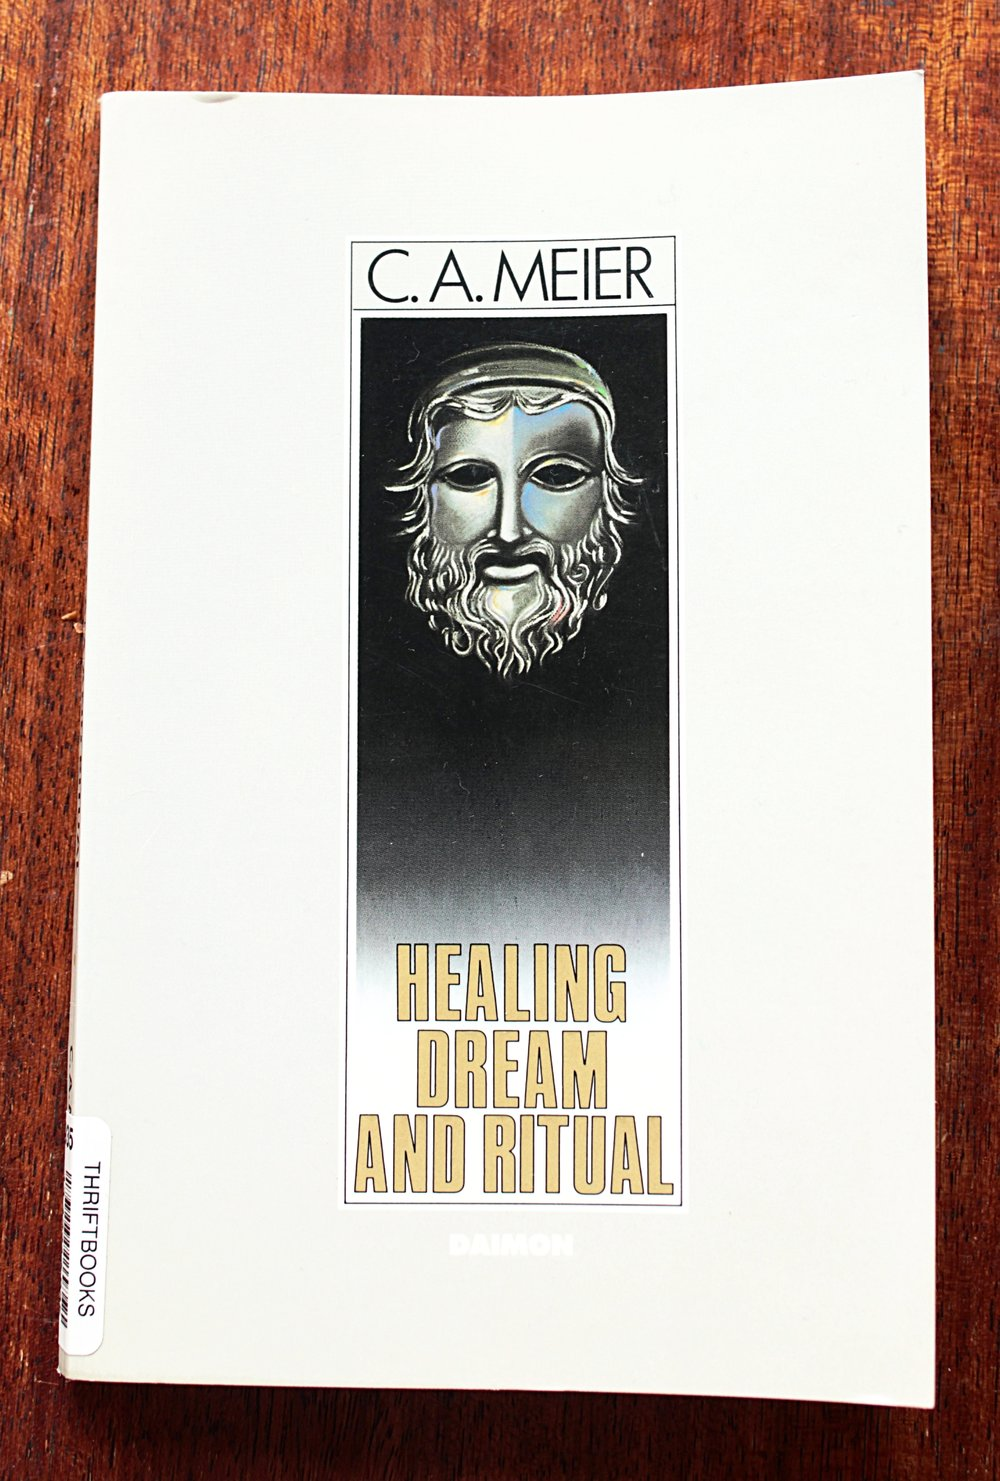 Healing Dream and Ritual - C.A. Meier  - Professor C.A. Meier was a psychiatrist and psychotherapist in Switzerland. A co-founder of the C.G. Jung Institute and its president. This book is an exhaustive exploration of Greek Sleep Temple culture, history and the practice of dream incubation as a self-therapy. A comparative analysis of ancient incubation and modern, Jungian psychotherapy in which the human need for divine intervention is seen as the ideal device for activating a self-healing mechanism within the psyche.  According to Jung modern humans suffer when they feel a remoteness from God. Healing occurs when the distance is reconciled. Dreams are the journeys the unconscious embarks upon to re-integrate with the divine.